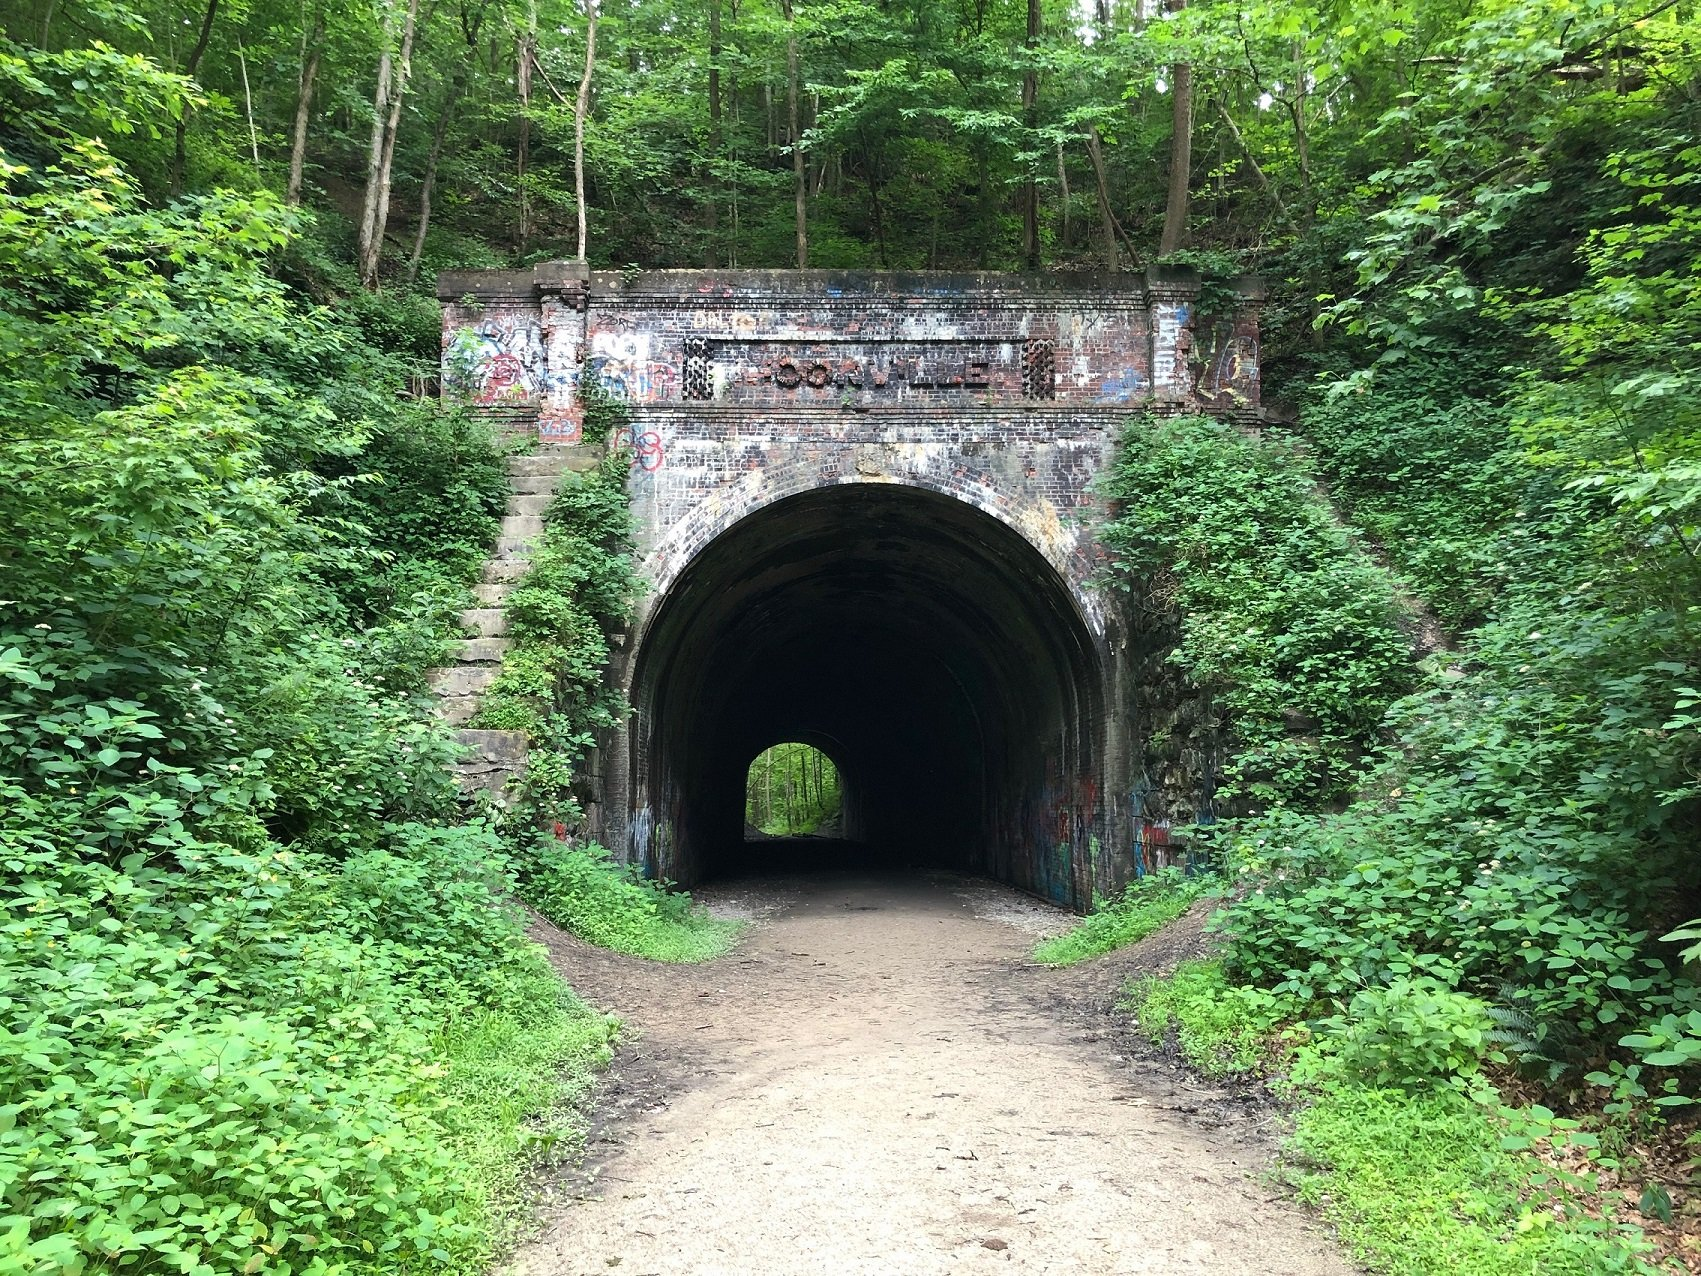 Western portal of the Moonville Tunnel. June 22, 2019.